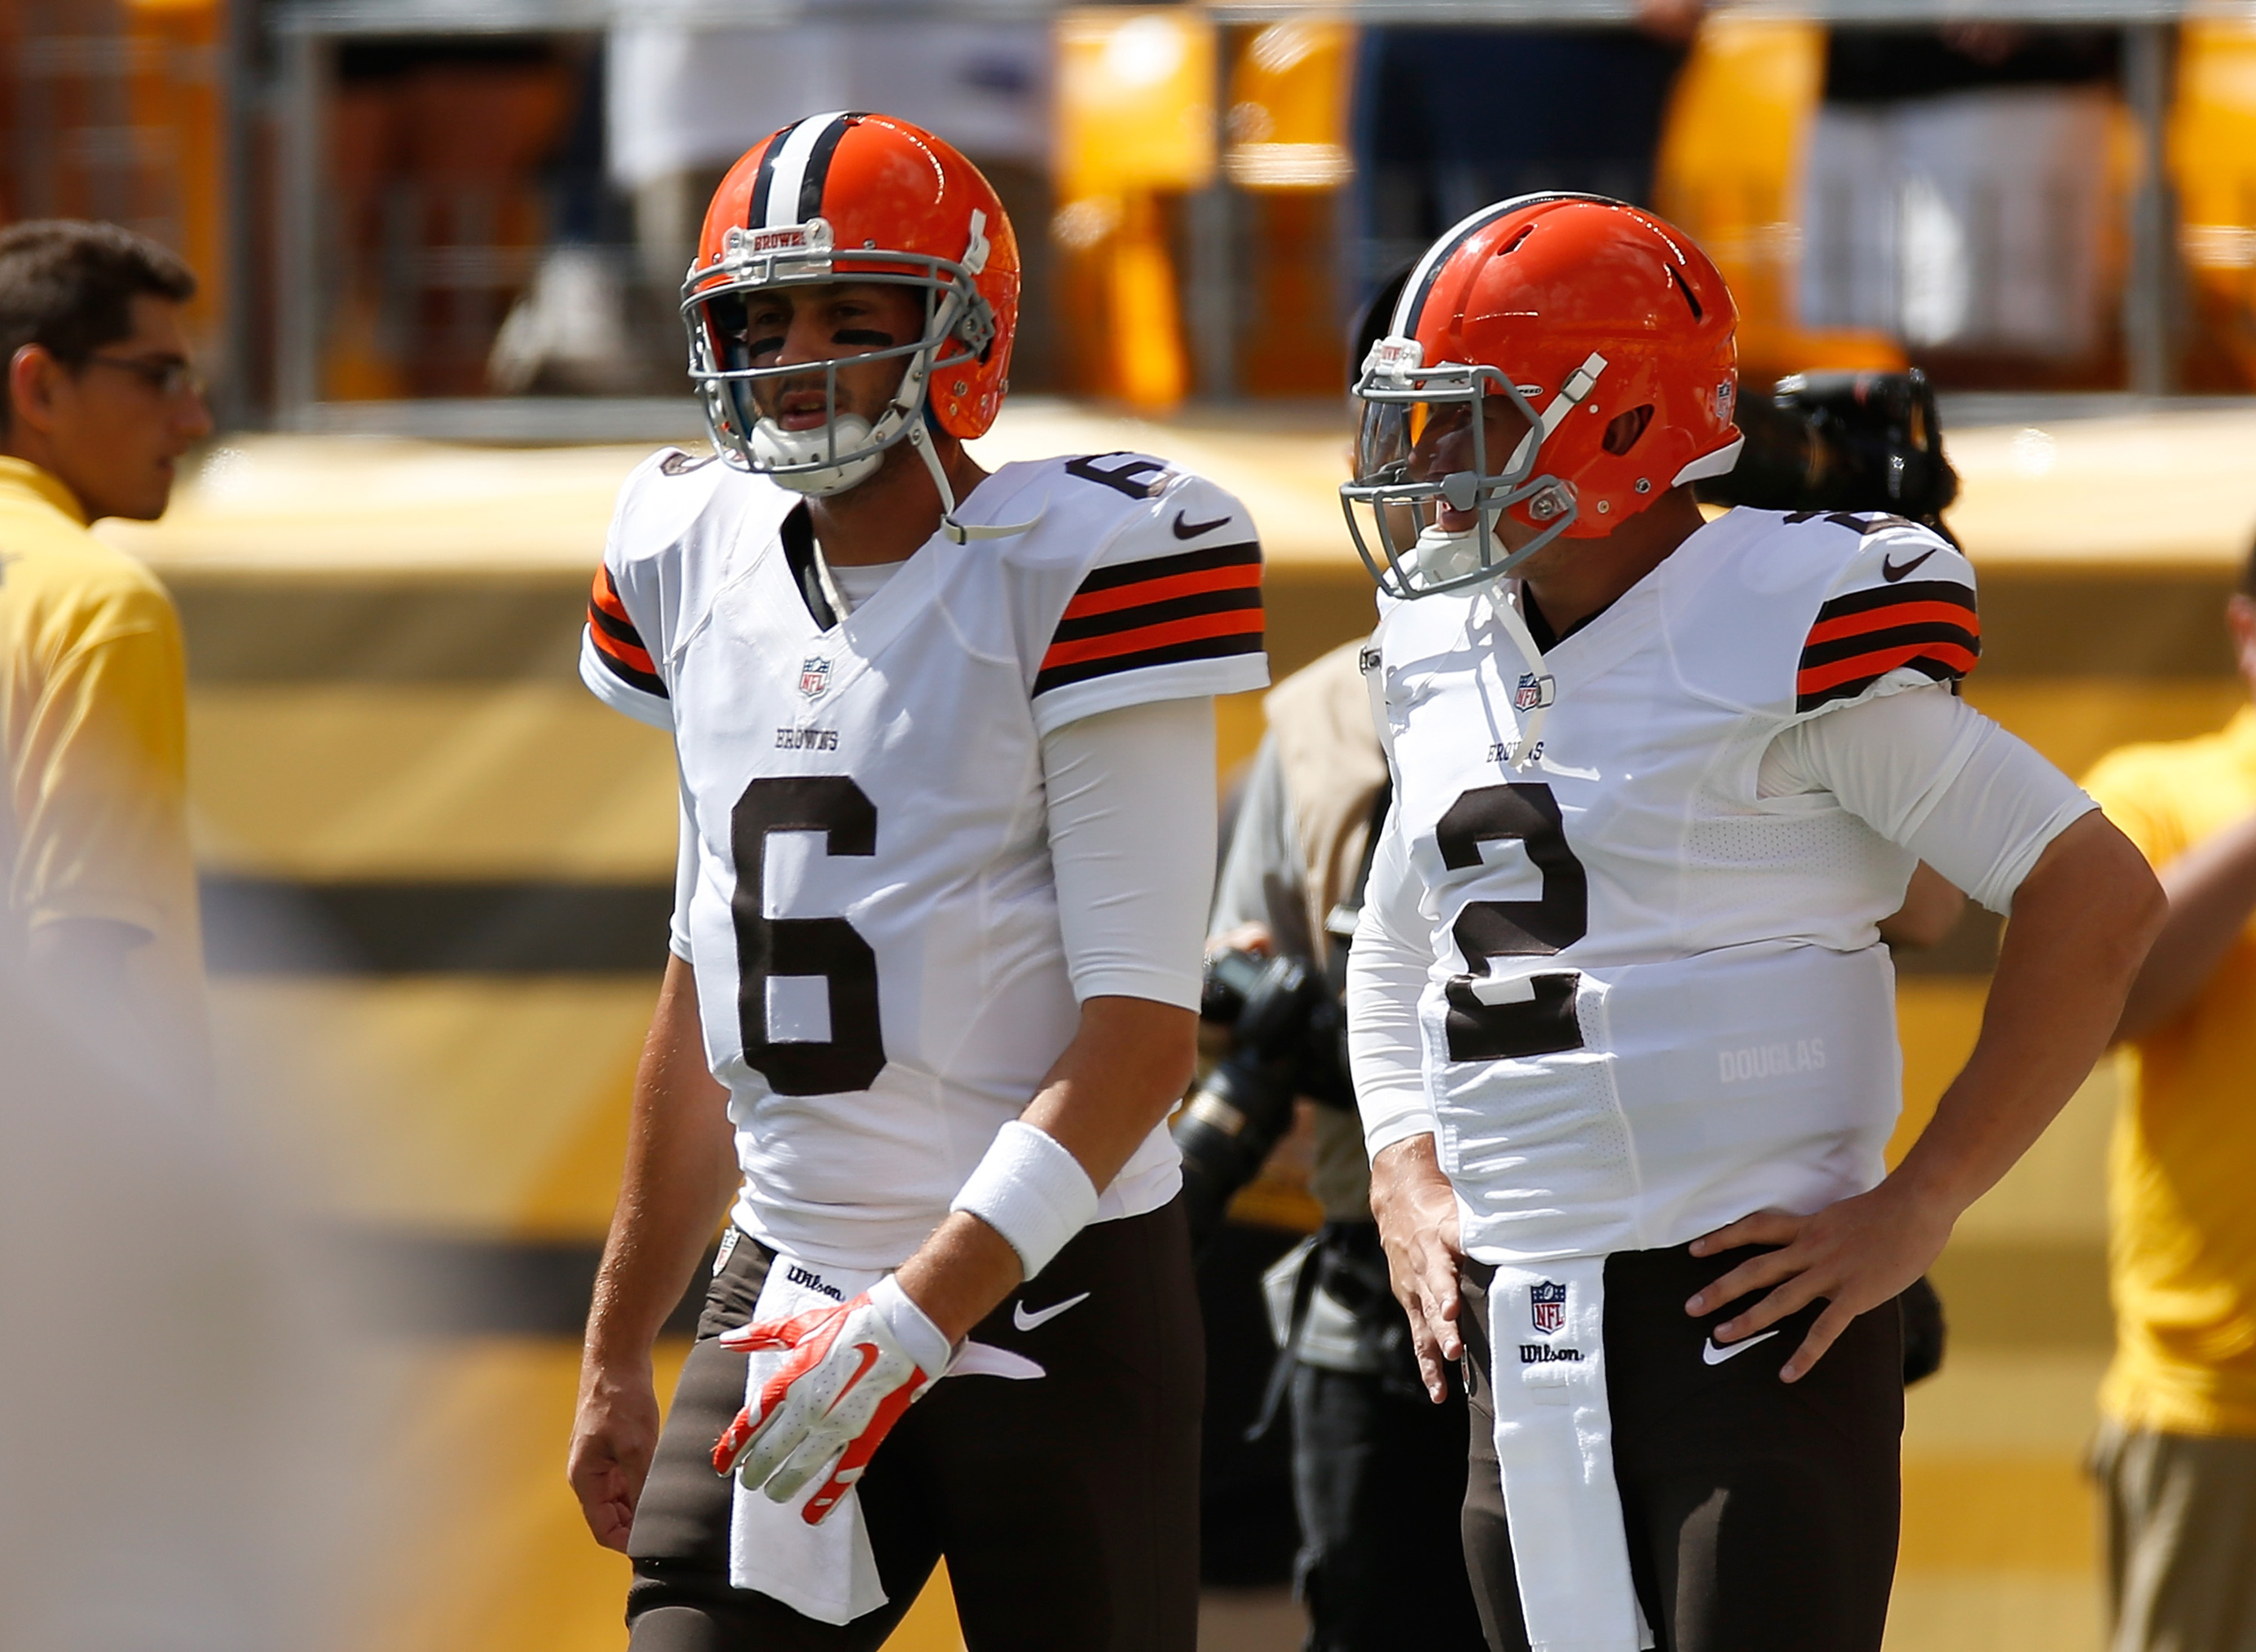 Johnny Manziel is still a future starter, says Browns GM